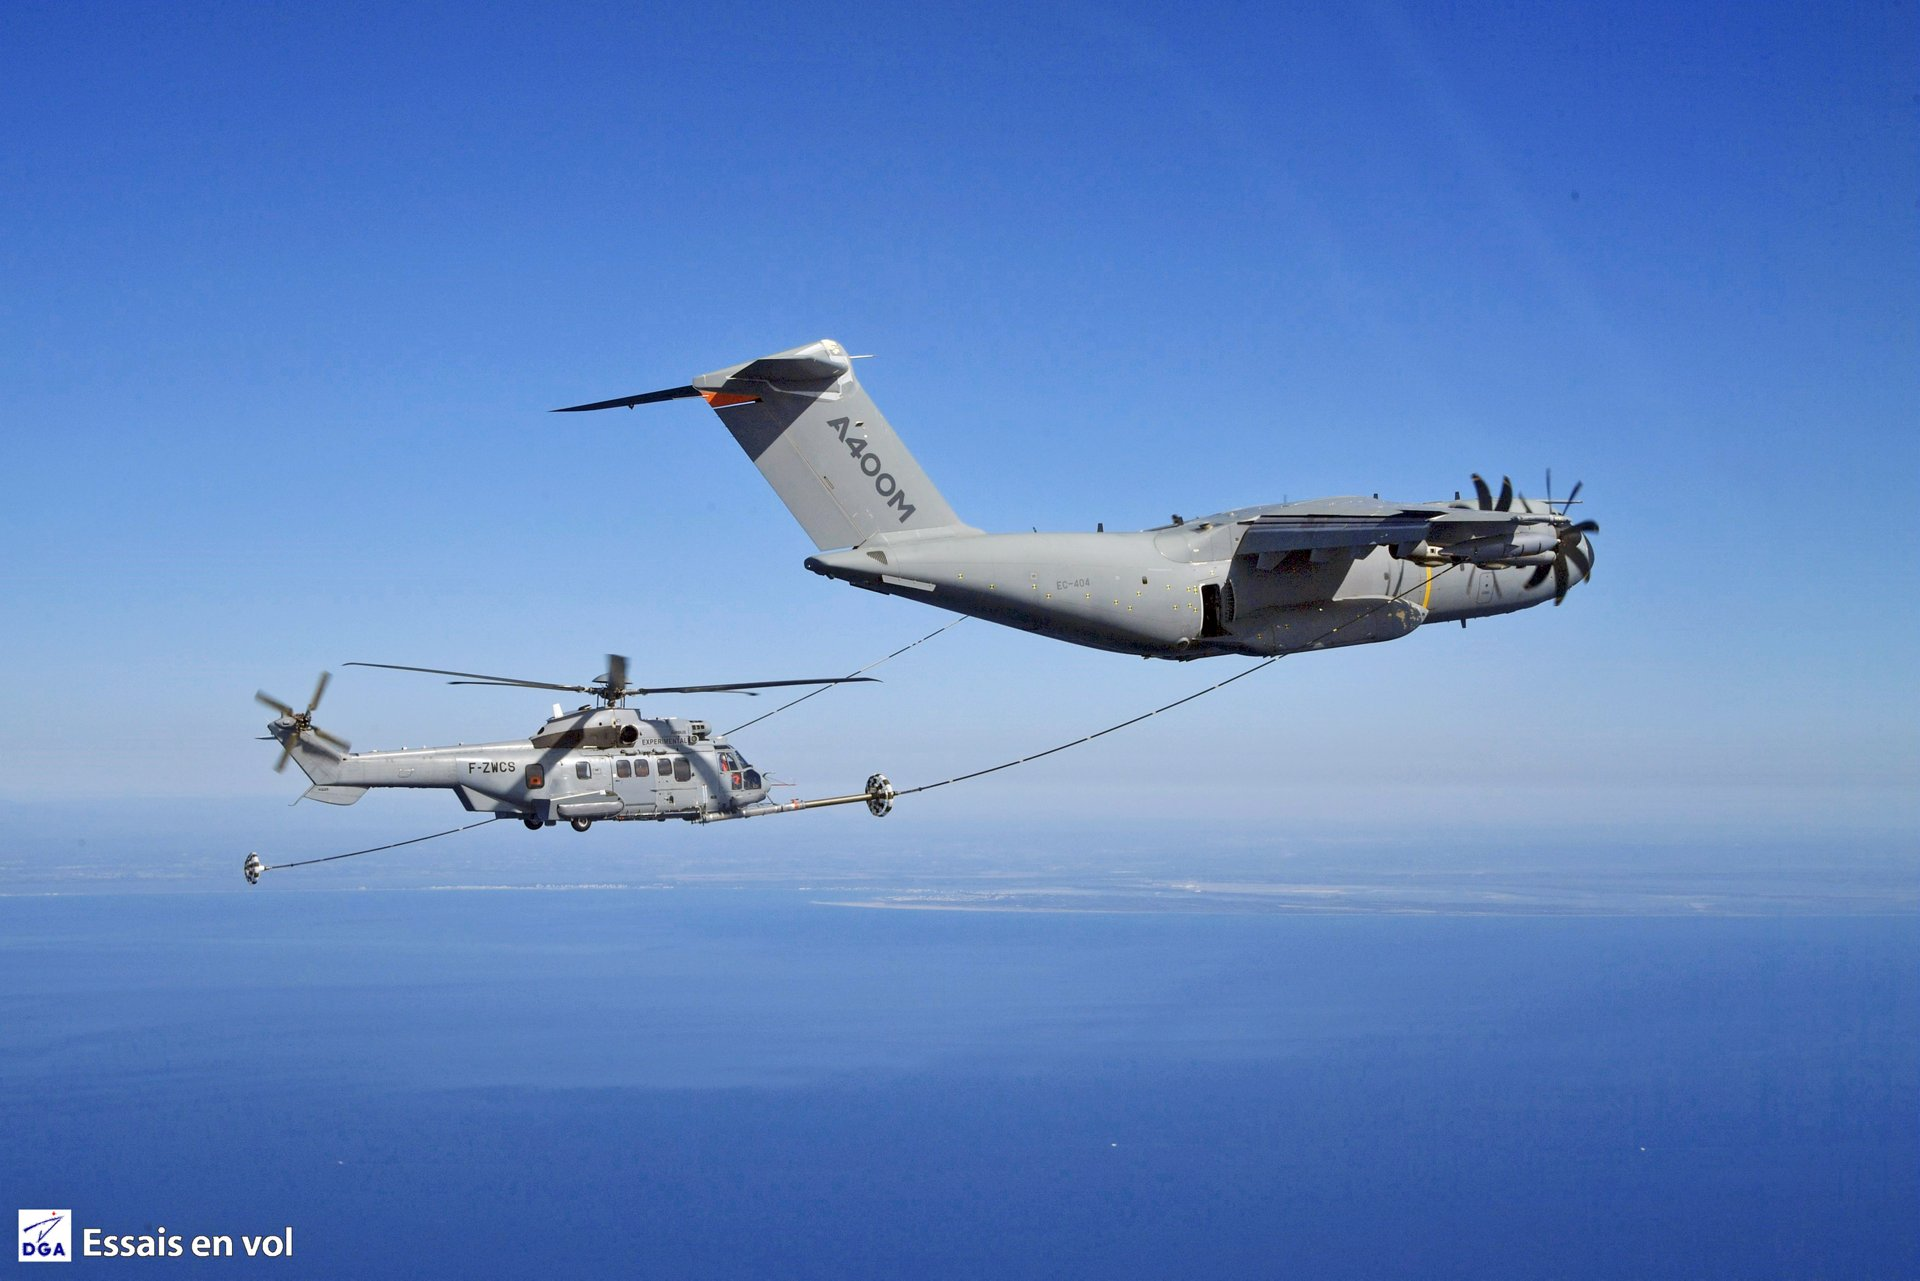 The Airbus A400M new generation airlifter has successfully achieved its first helicopter air-to-air refueling contacts with an H225M